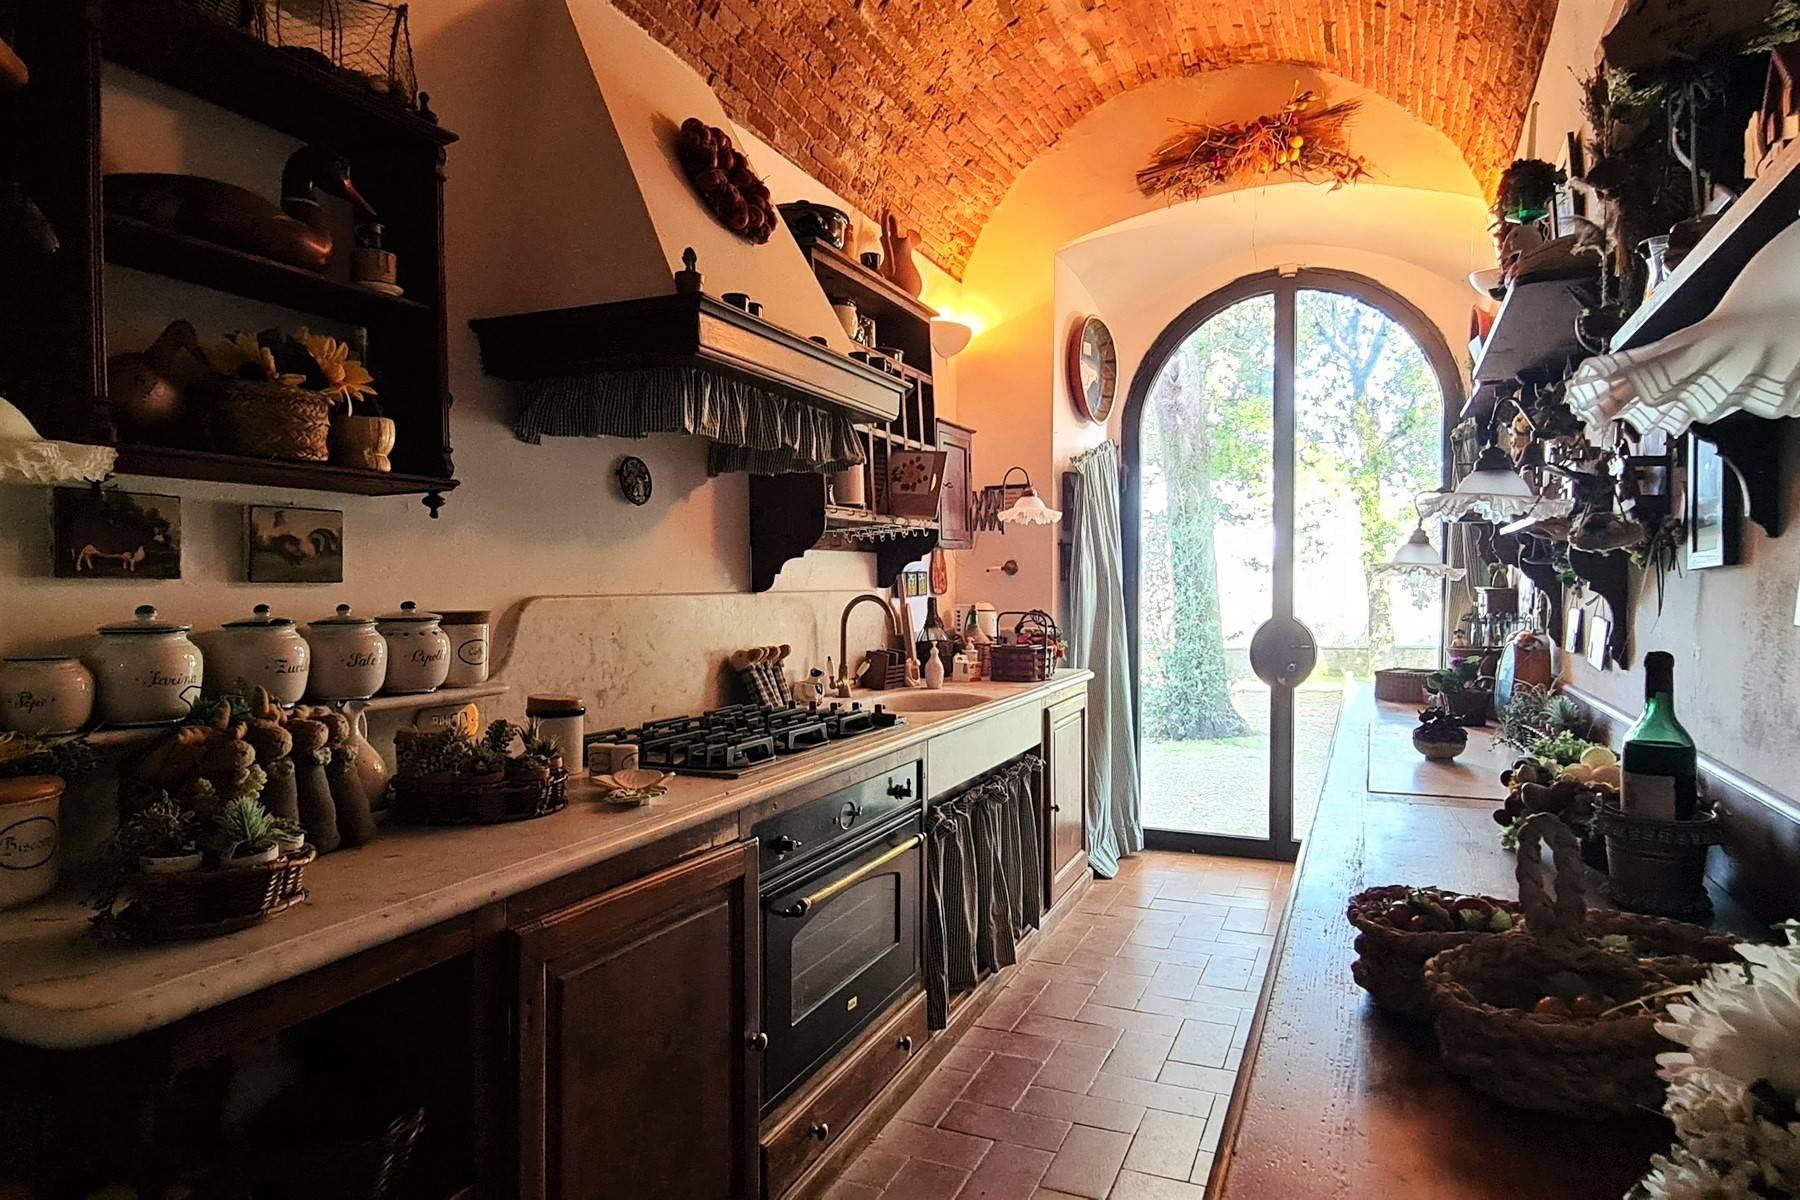 Enchanting historical villa in the heart of Chianti - 13